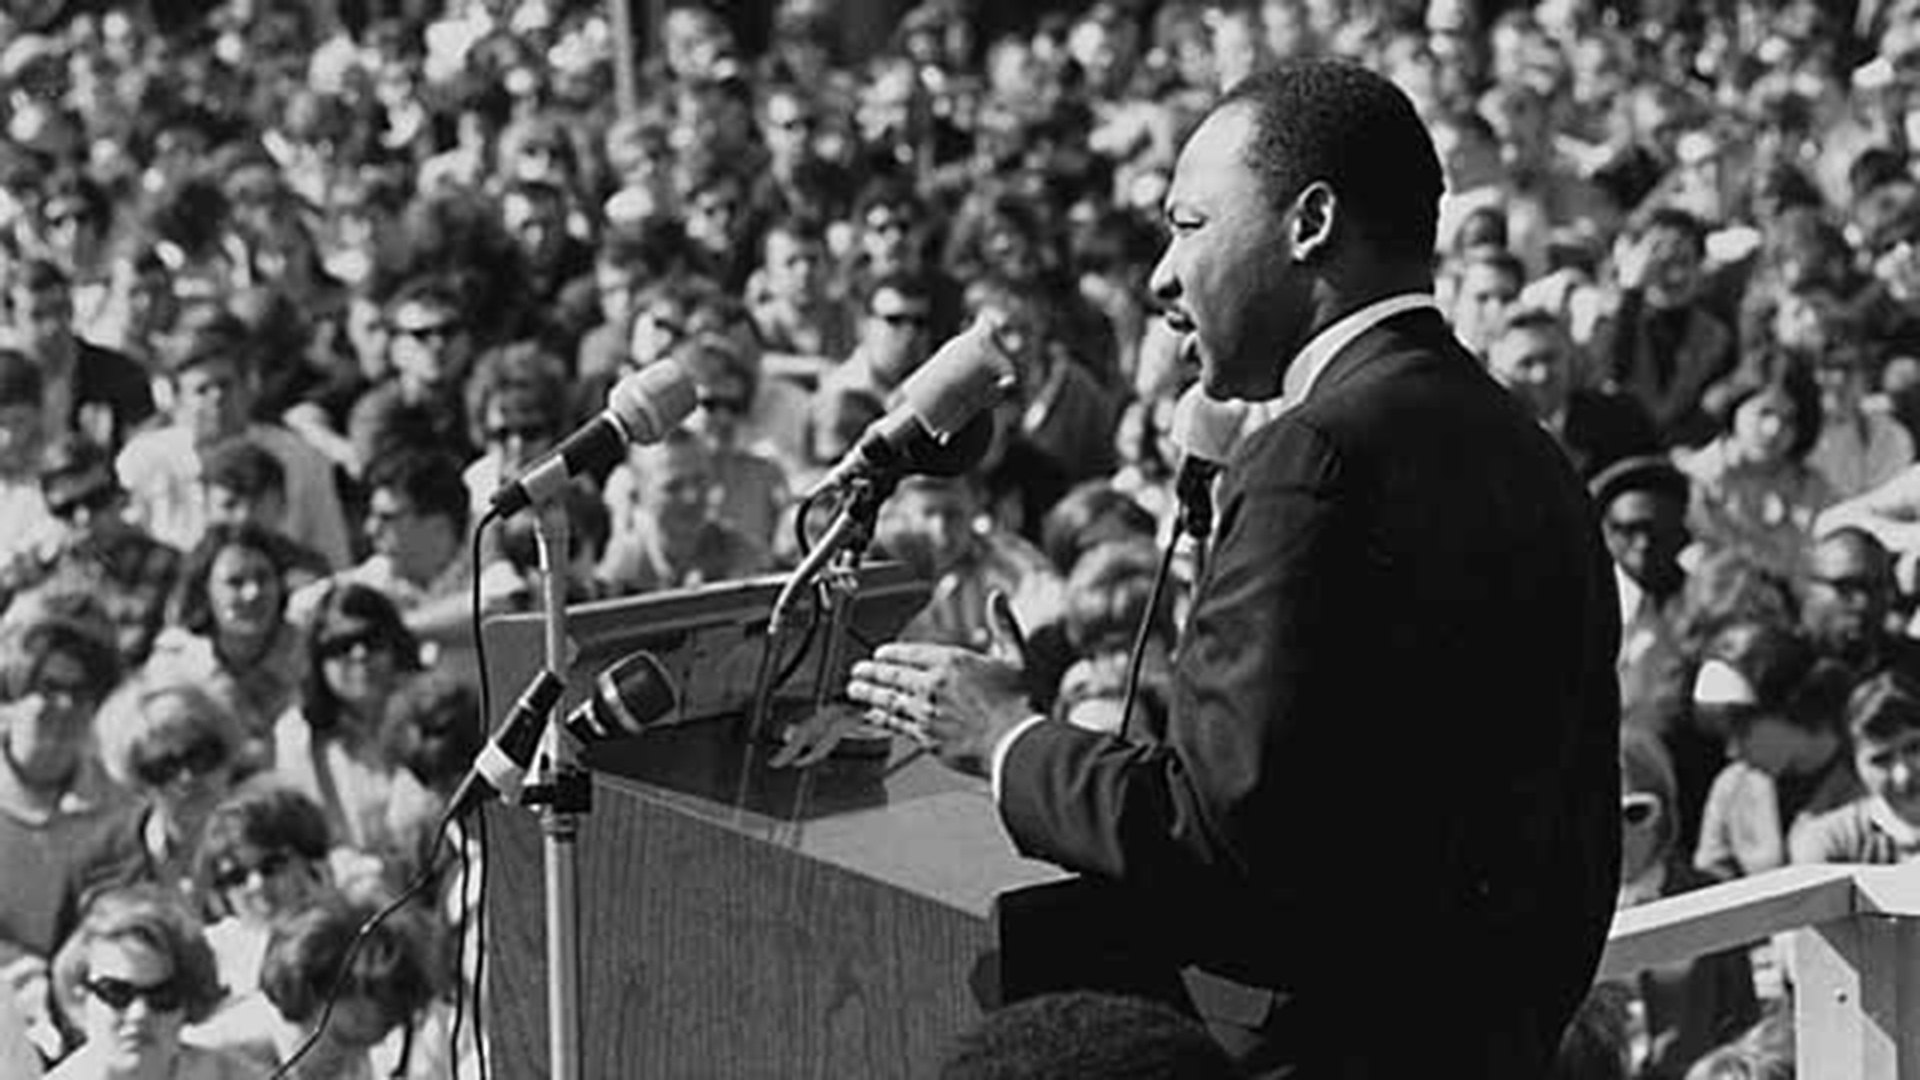 An African American man stands at a podium and addresses a crowd.